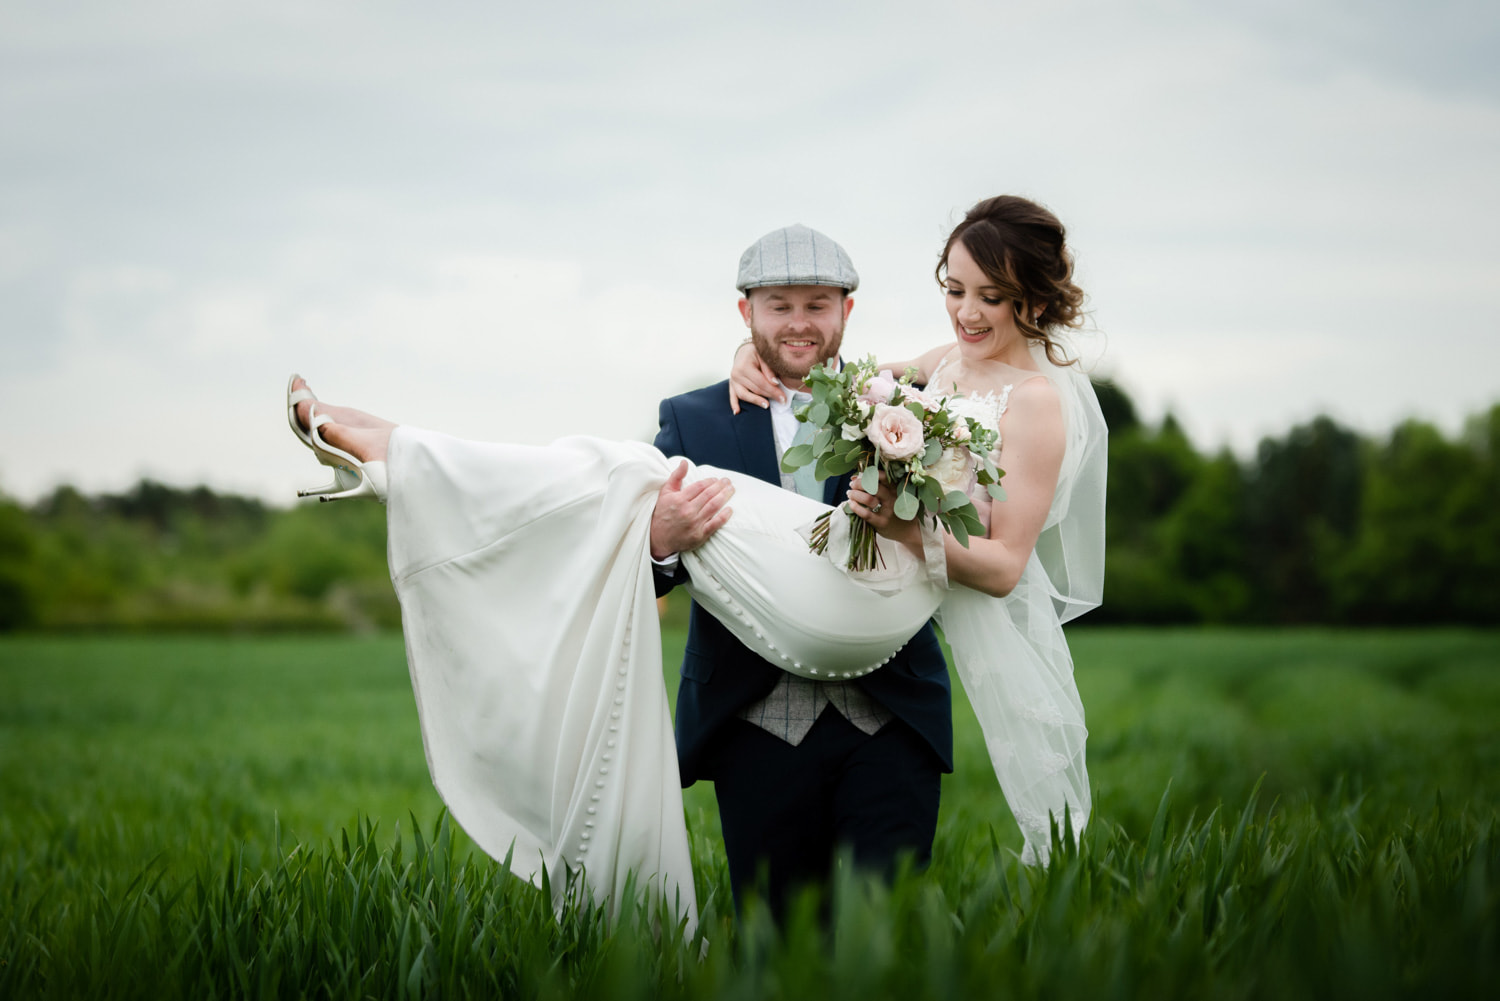 Groom carrying the bride in a field